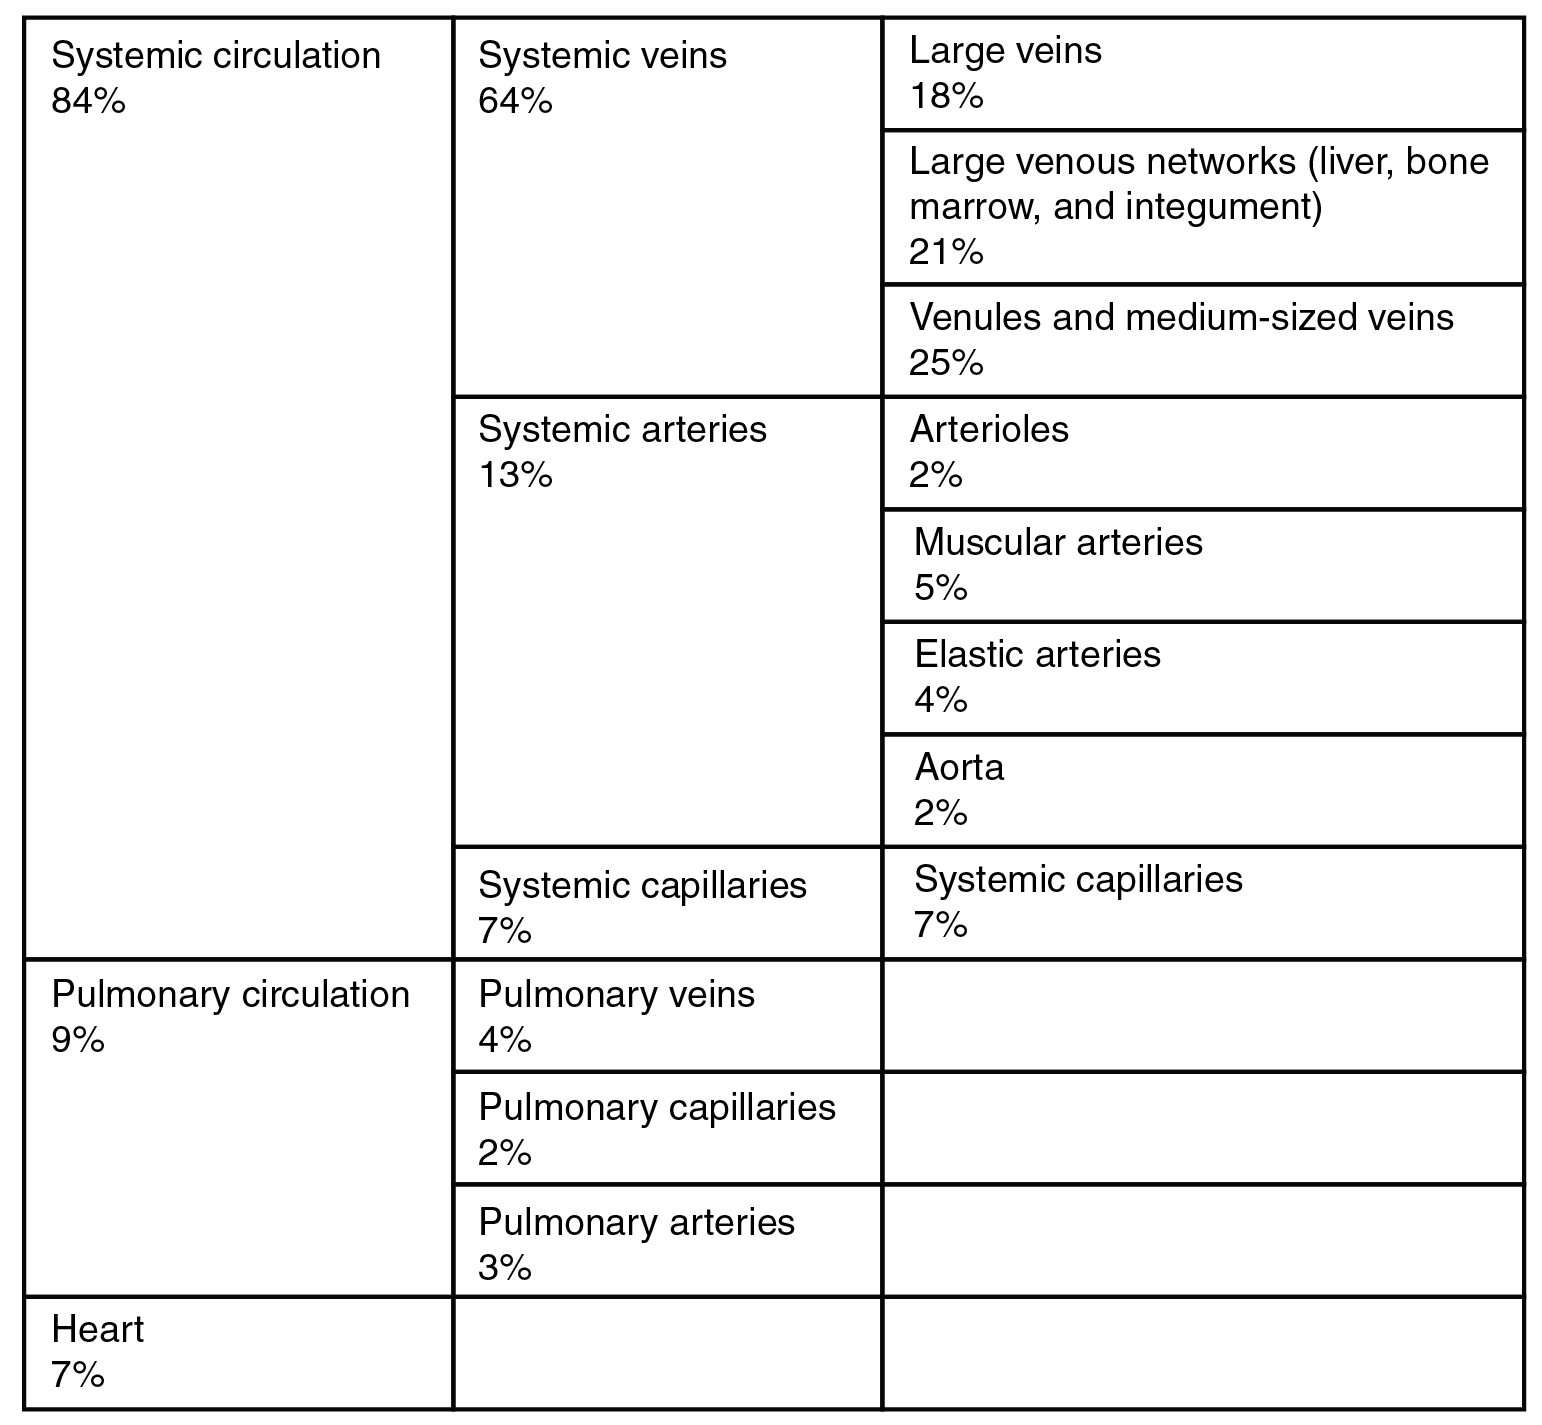 Structure and function of blood vessels this table describes the distribution of blood flow 84 percent of blood flow is systemic nvjuhfo Gallery